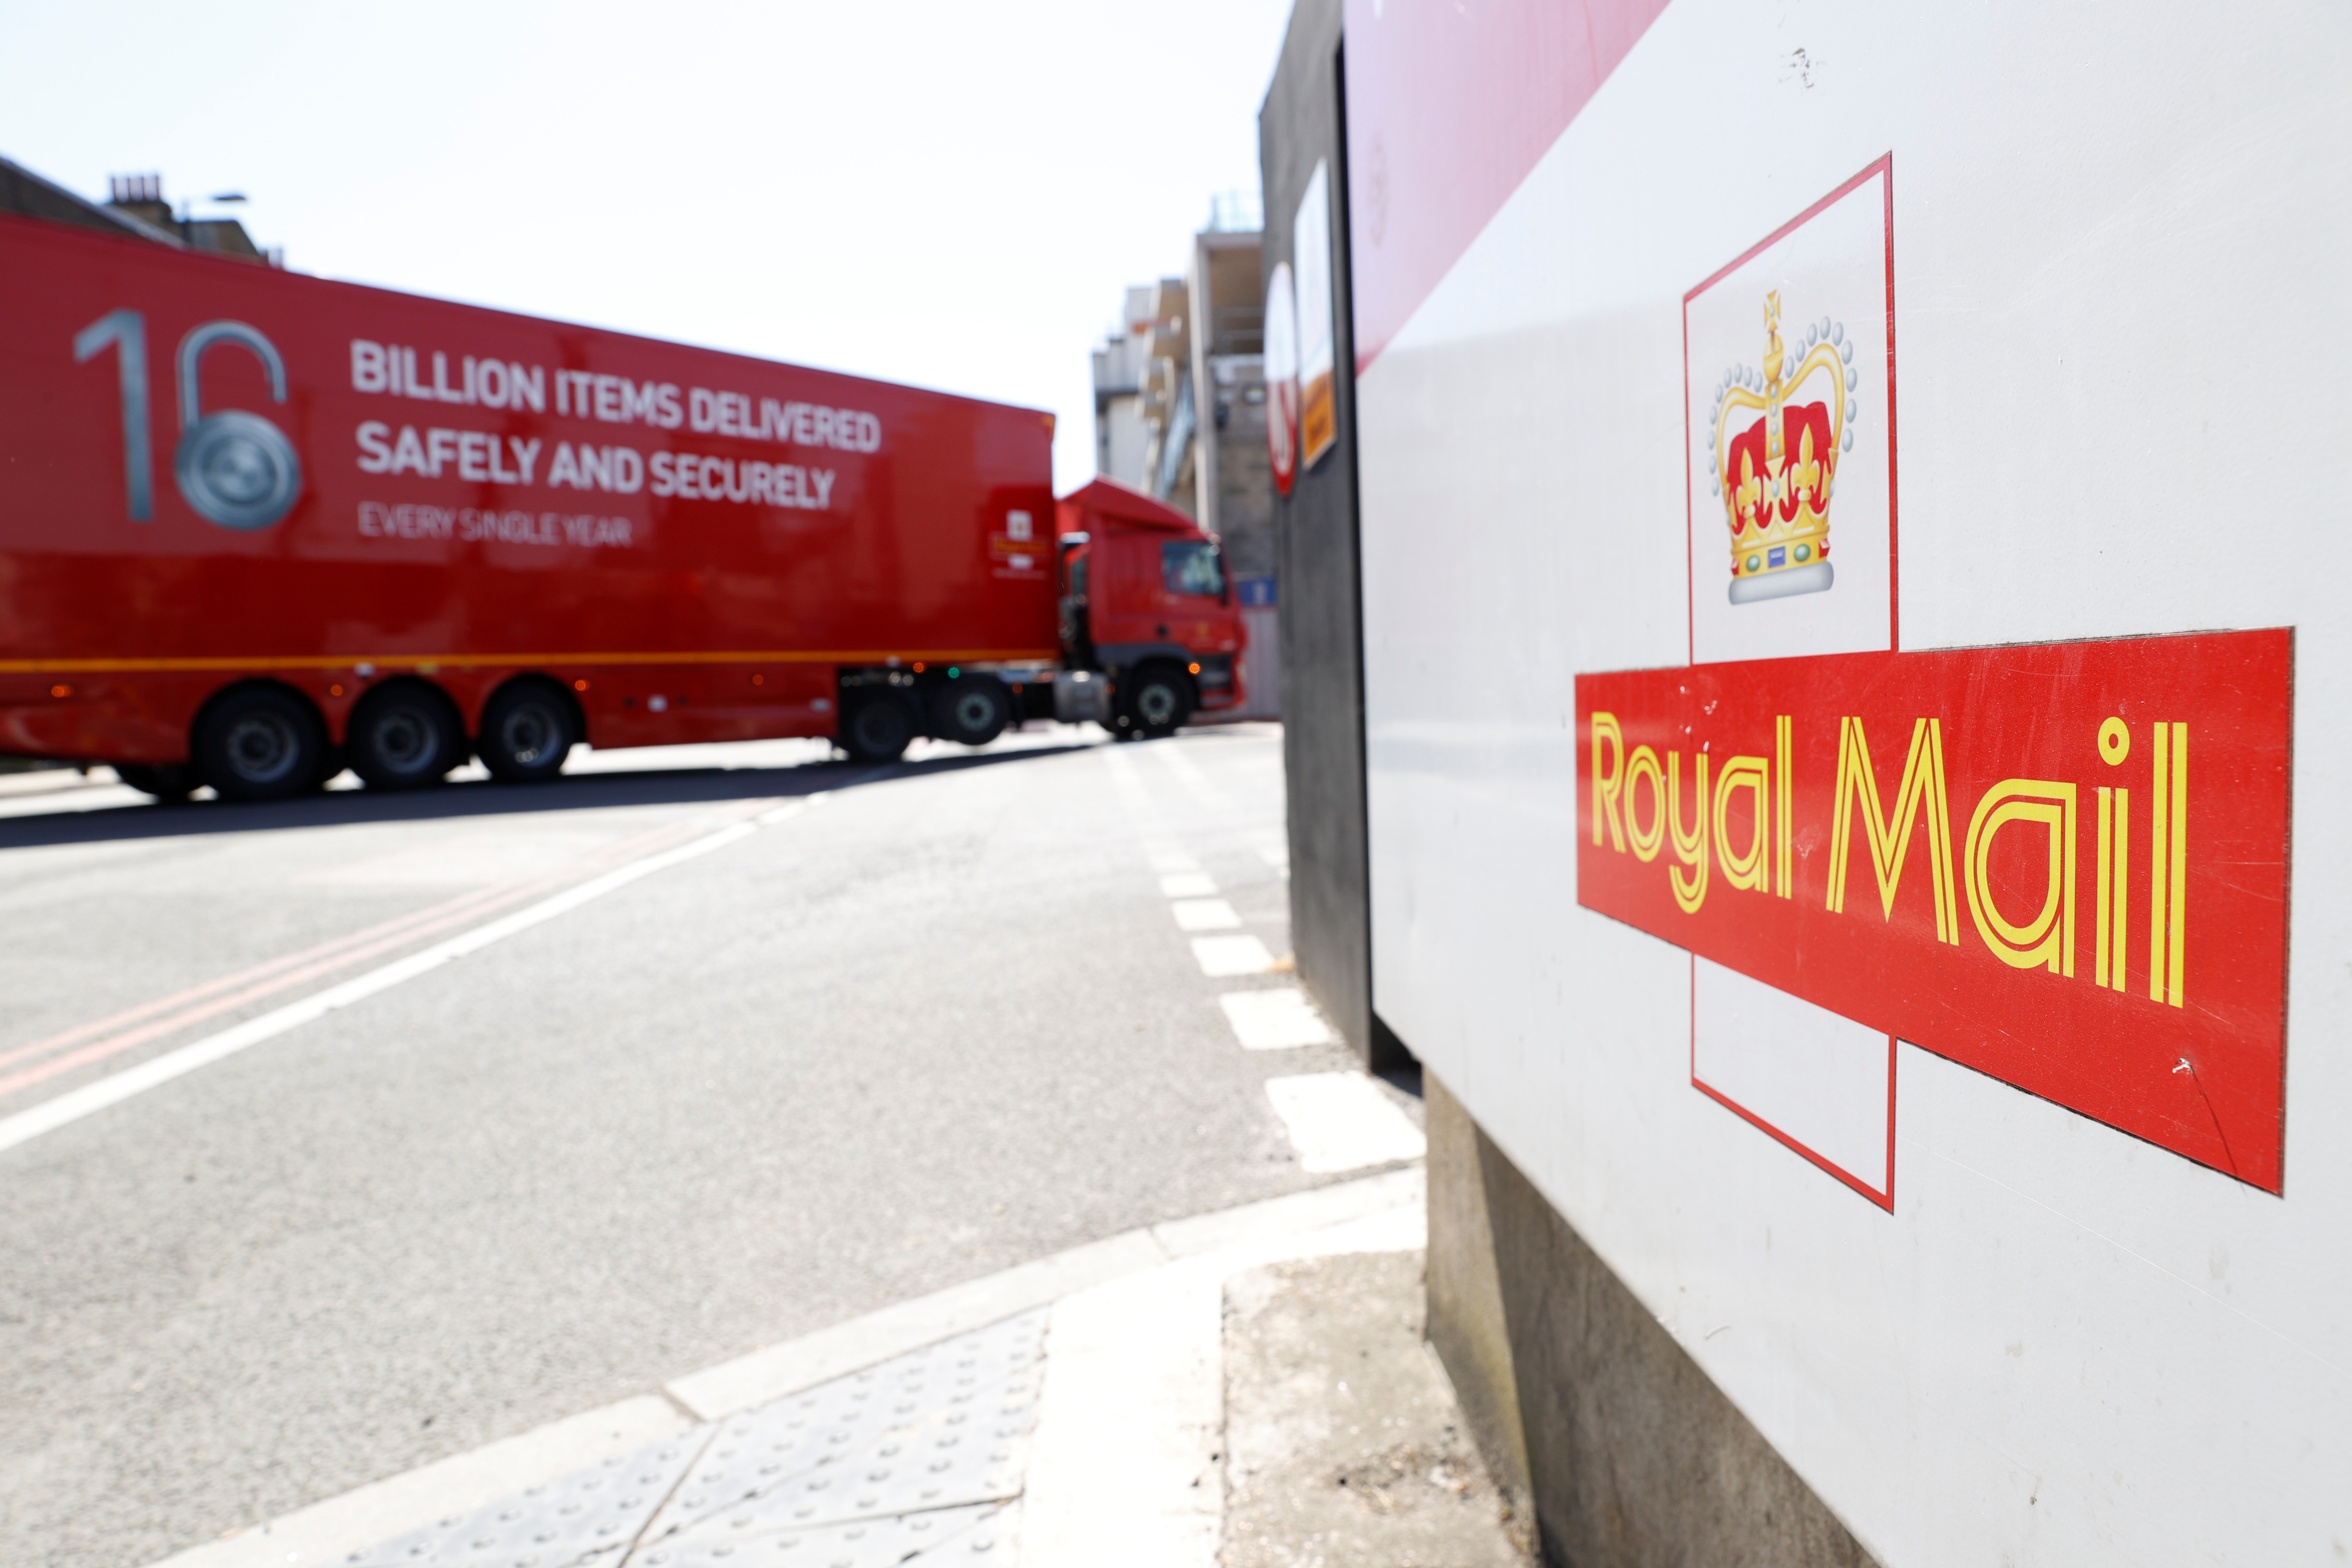 The logo of Royal Mail is seen outside the Mount Pleasant Sorting Office as a delivery vehicle arrives, in London, Britain, June 25, 2020. REUTERS/John Sibley